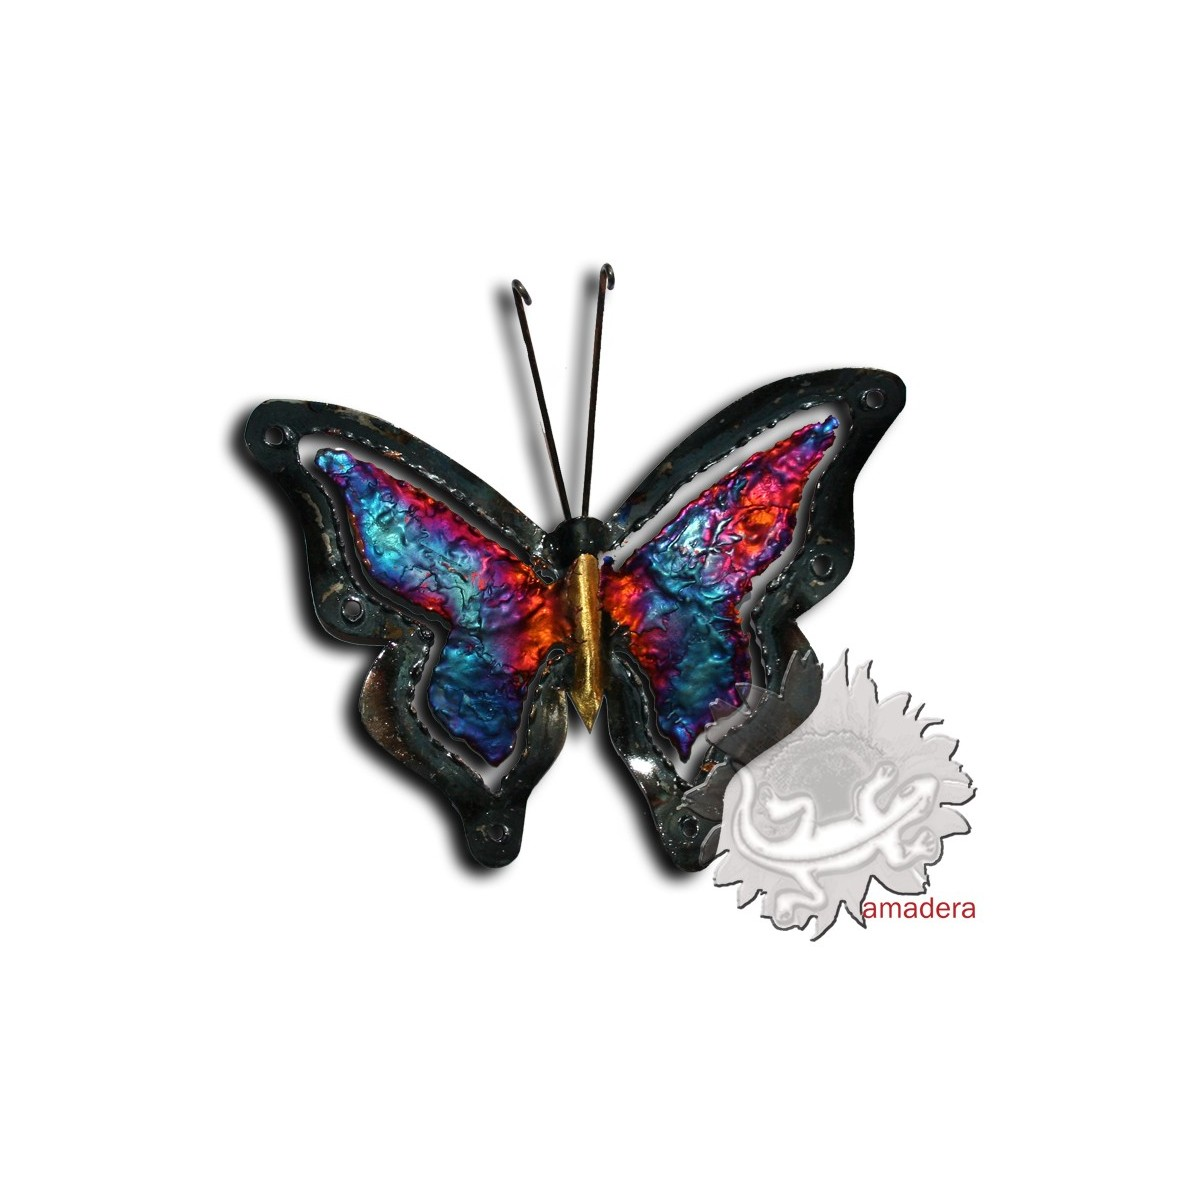 d coration d 39 int rieur murale papillon artisanal m tal On decoration murale papillon